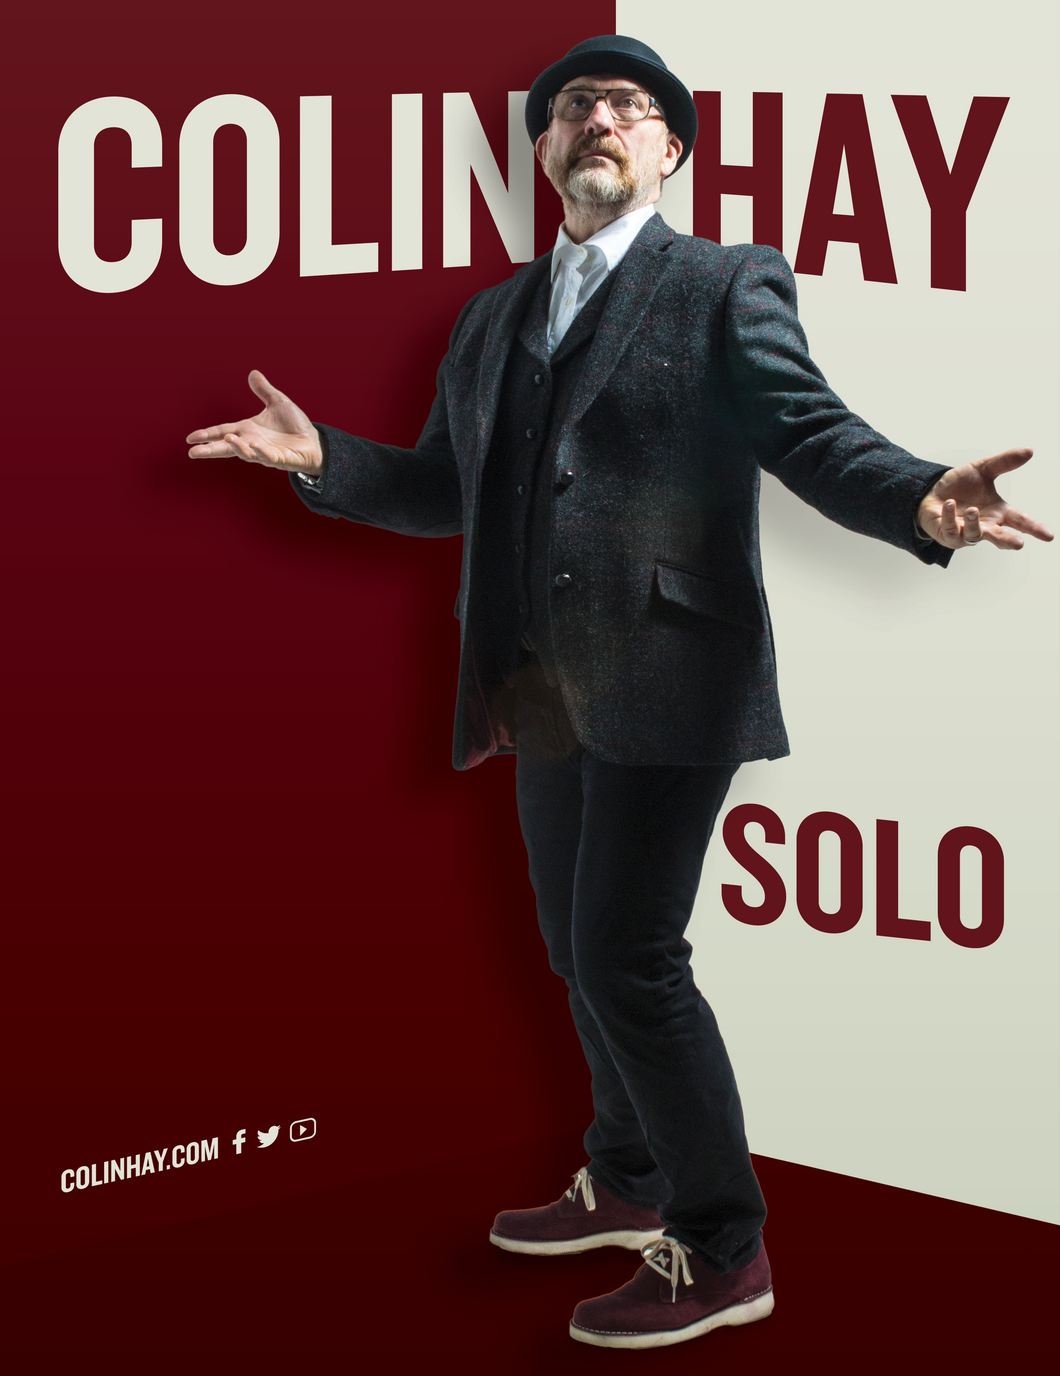 05/07/20 - Baton Rouge, LA - The Manship Theatre - Colin Hay Ticketless Meet & Greet Package